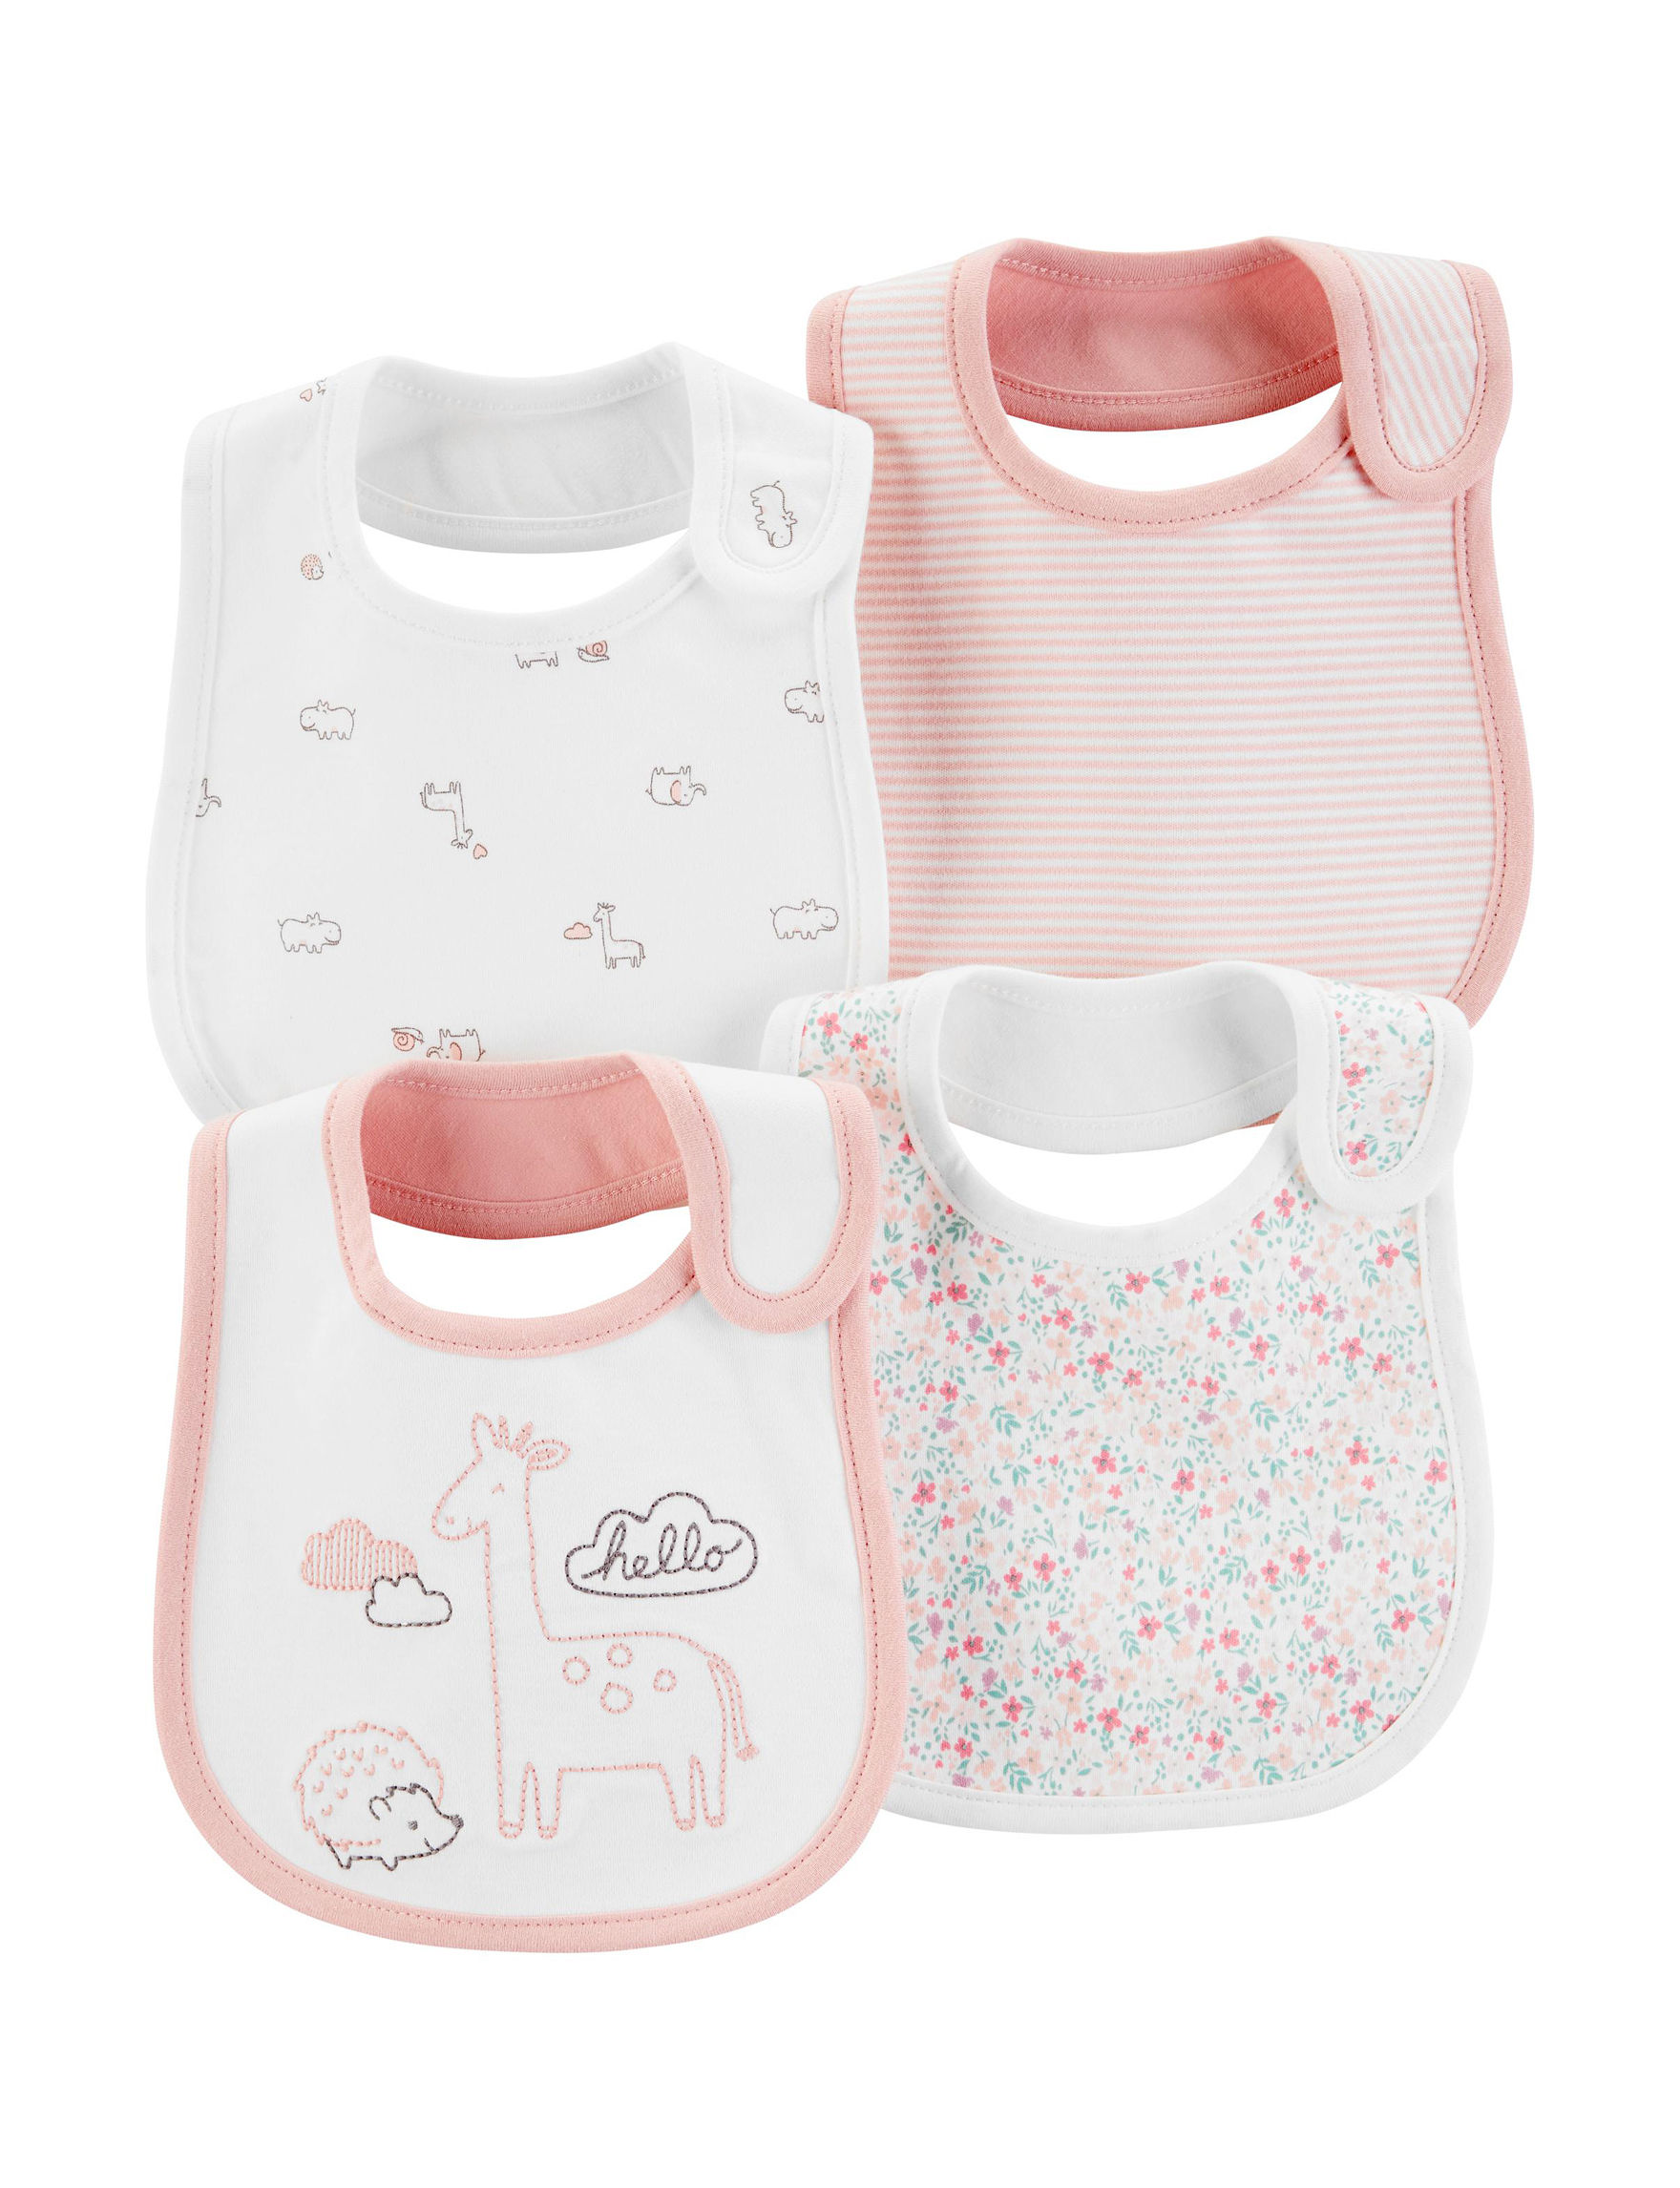 Carter's Pink / White Bibs & Burp Cloths